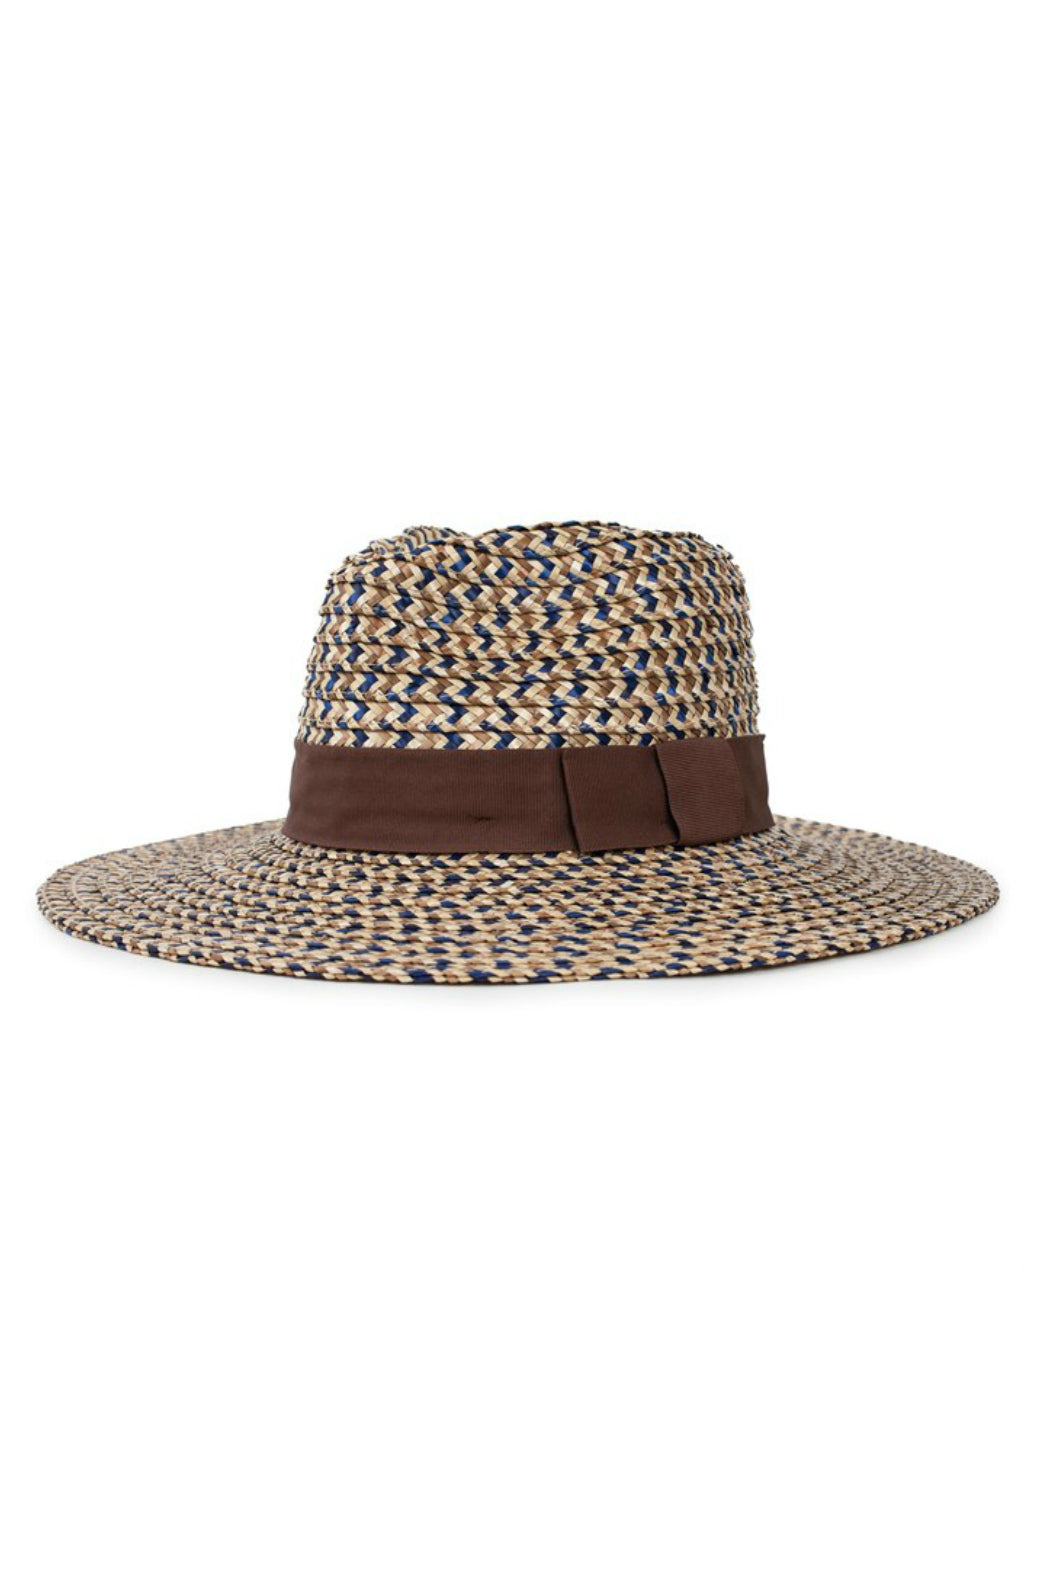 f60a1e1f Brixton Joanna Hat - Brown – Queen of Hearts and Modern Love